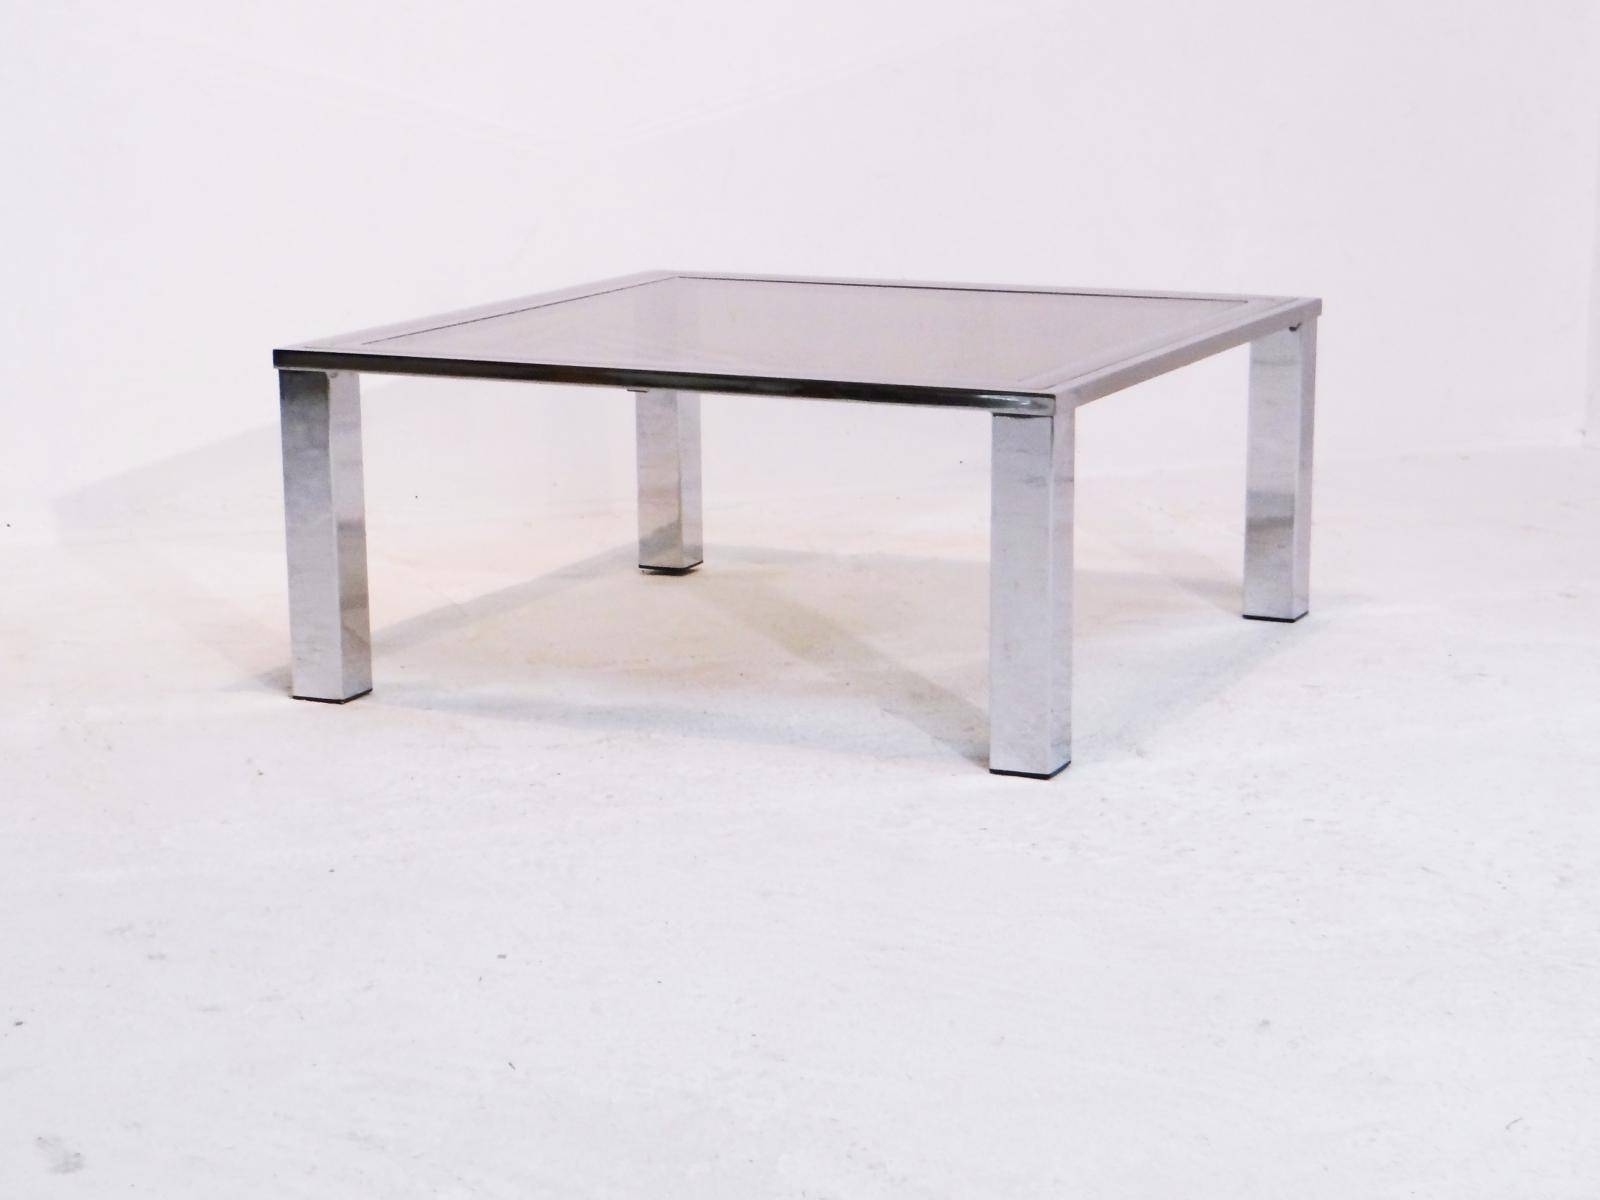 Vintage Coffee Table With Smoked Glass Top For Sale At Pamono Inside Retro Smoked Glass Coffee Tables (View 7 of 30)